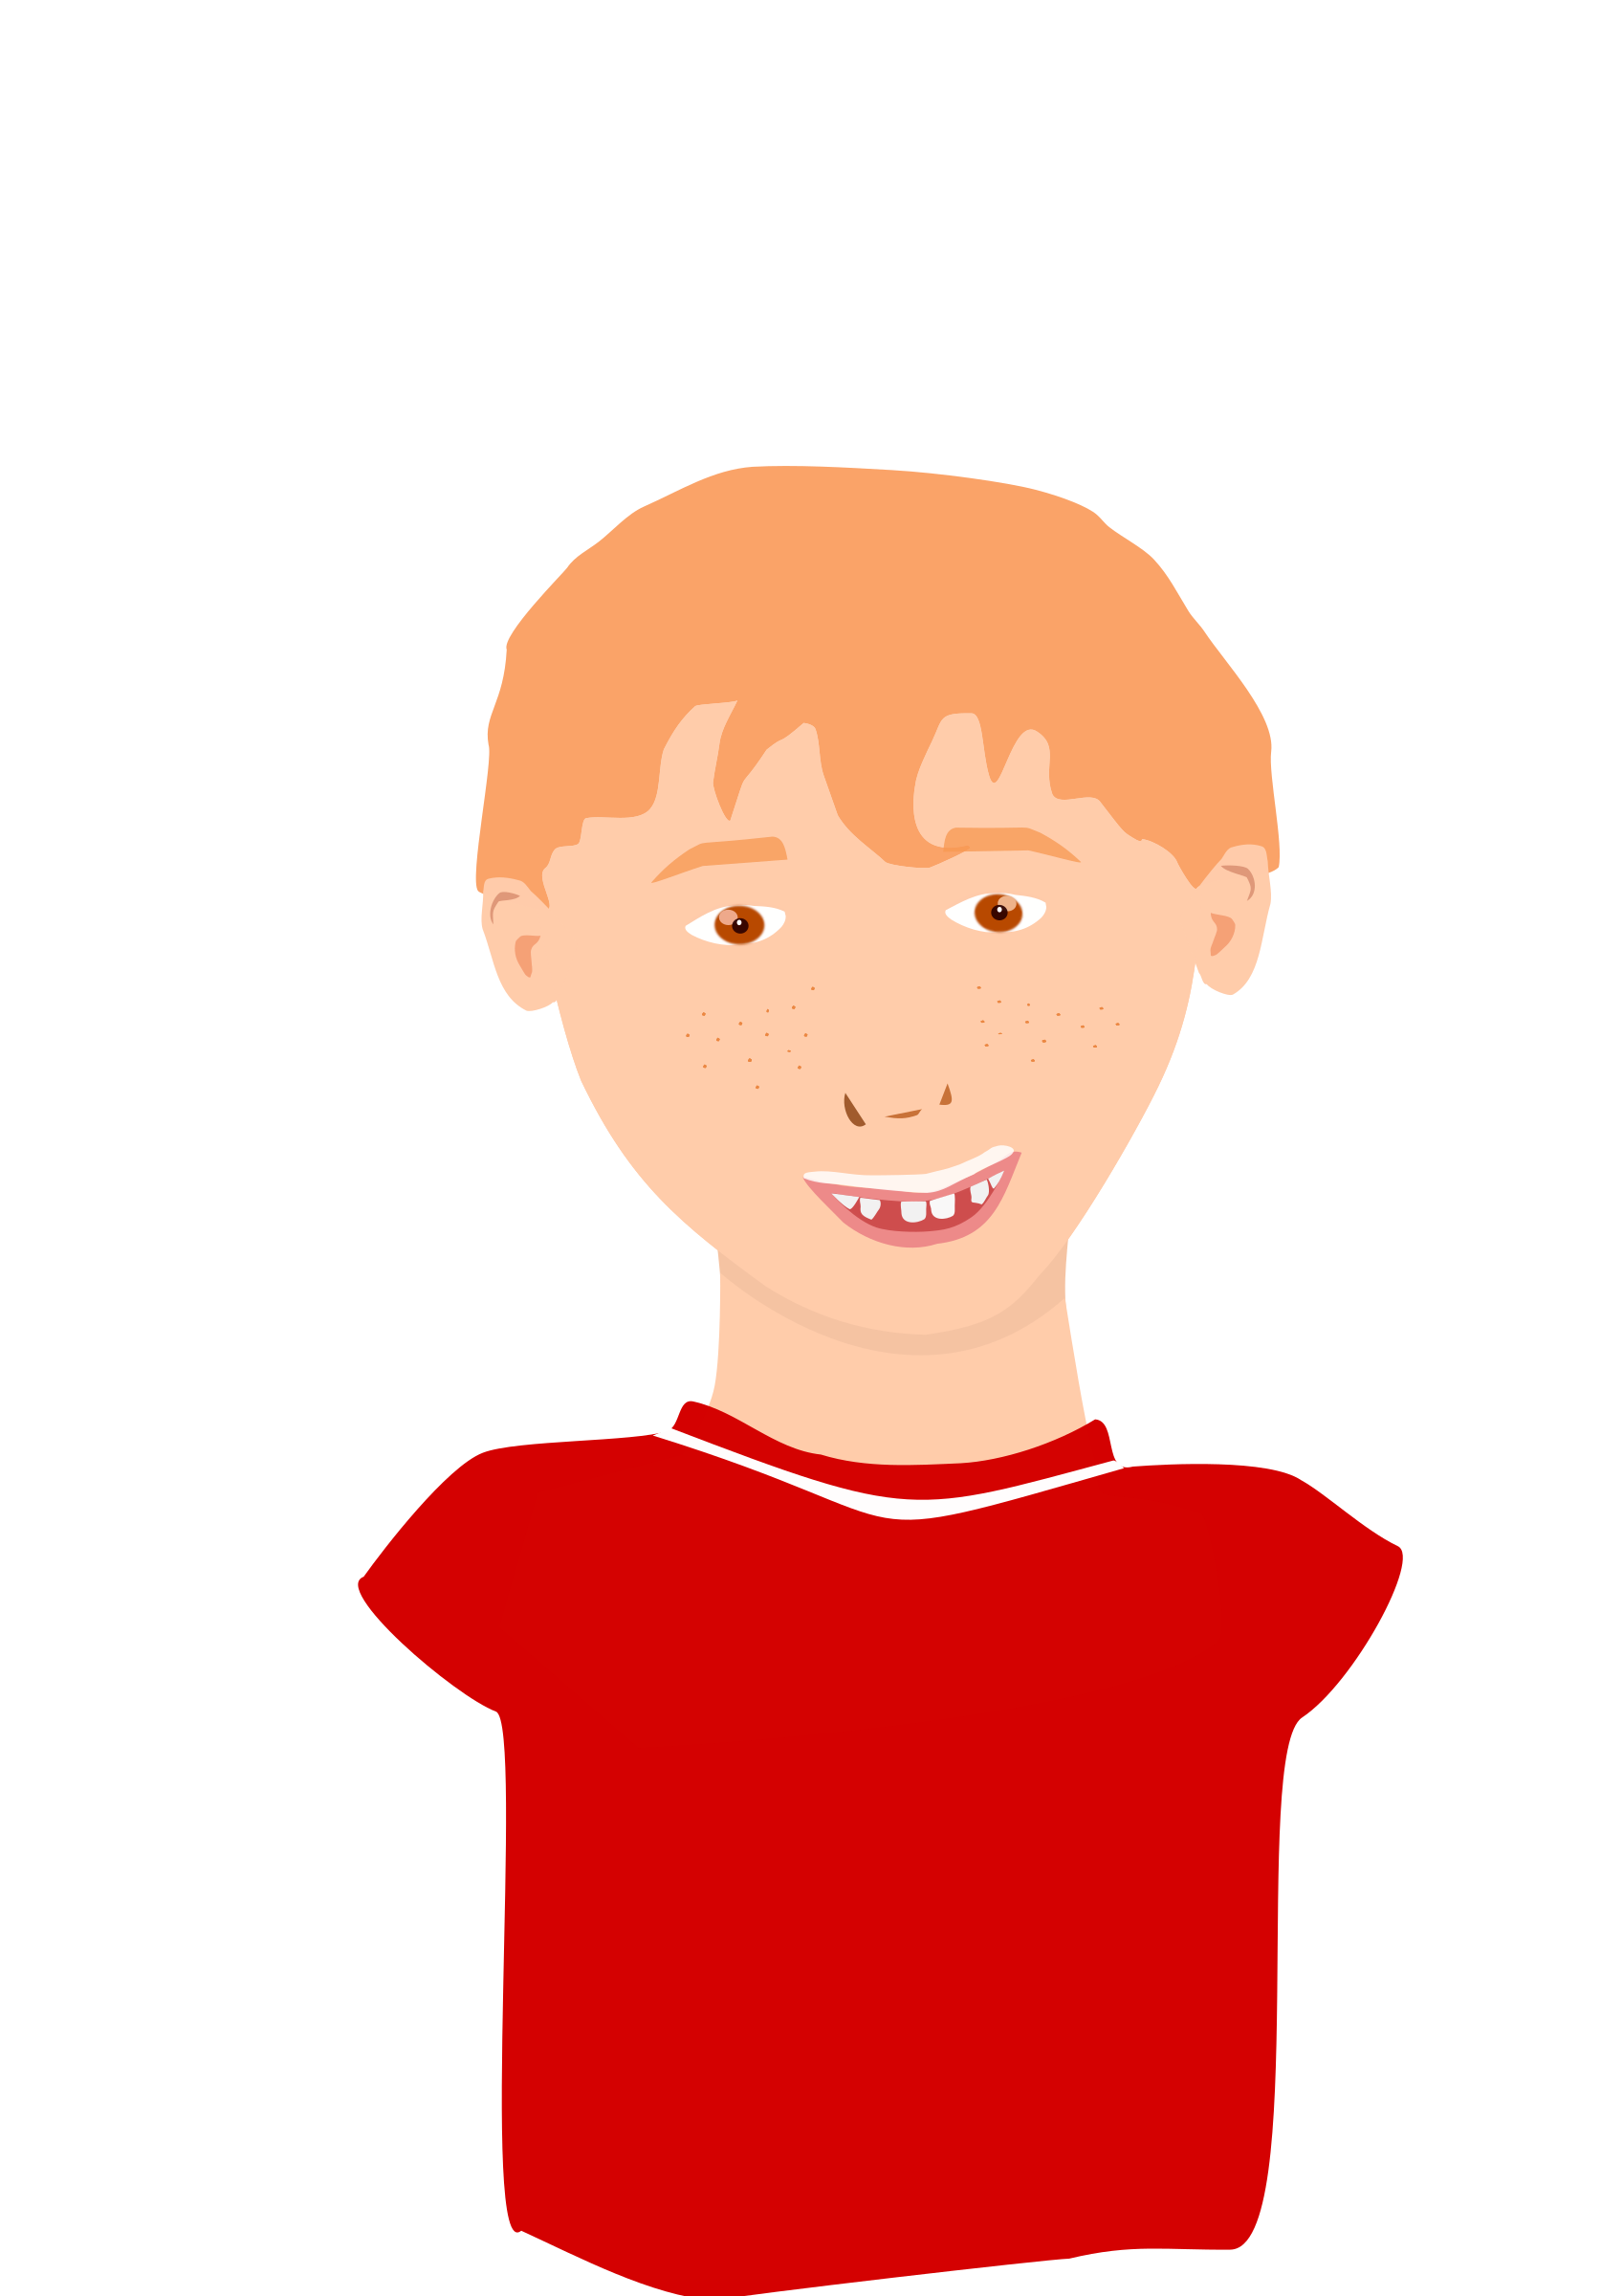 Red-hair boy smiling by ElodieVentura